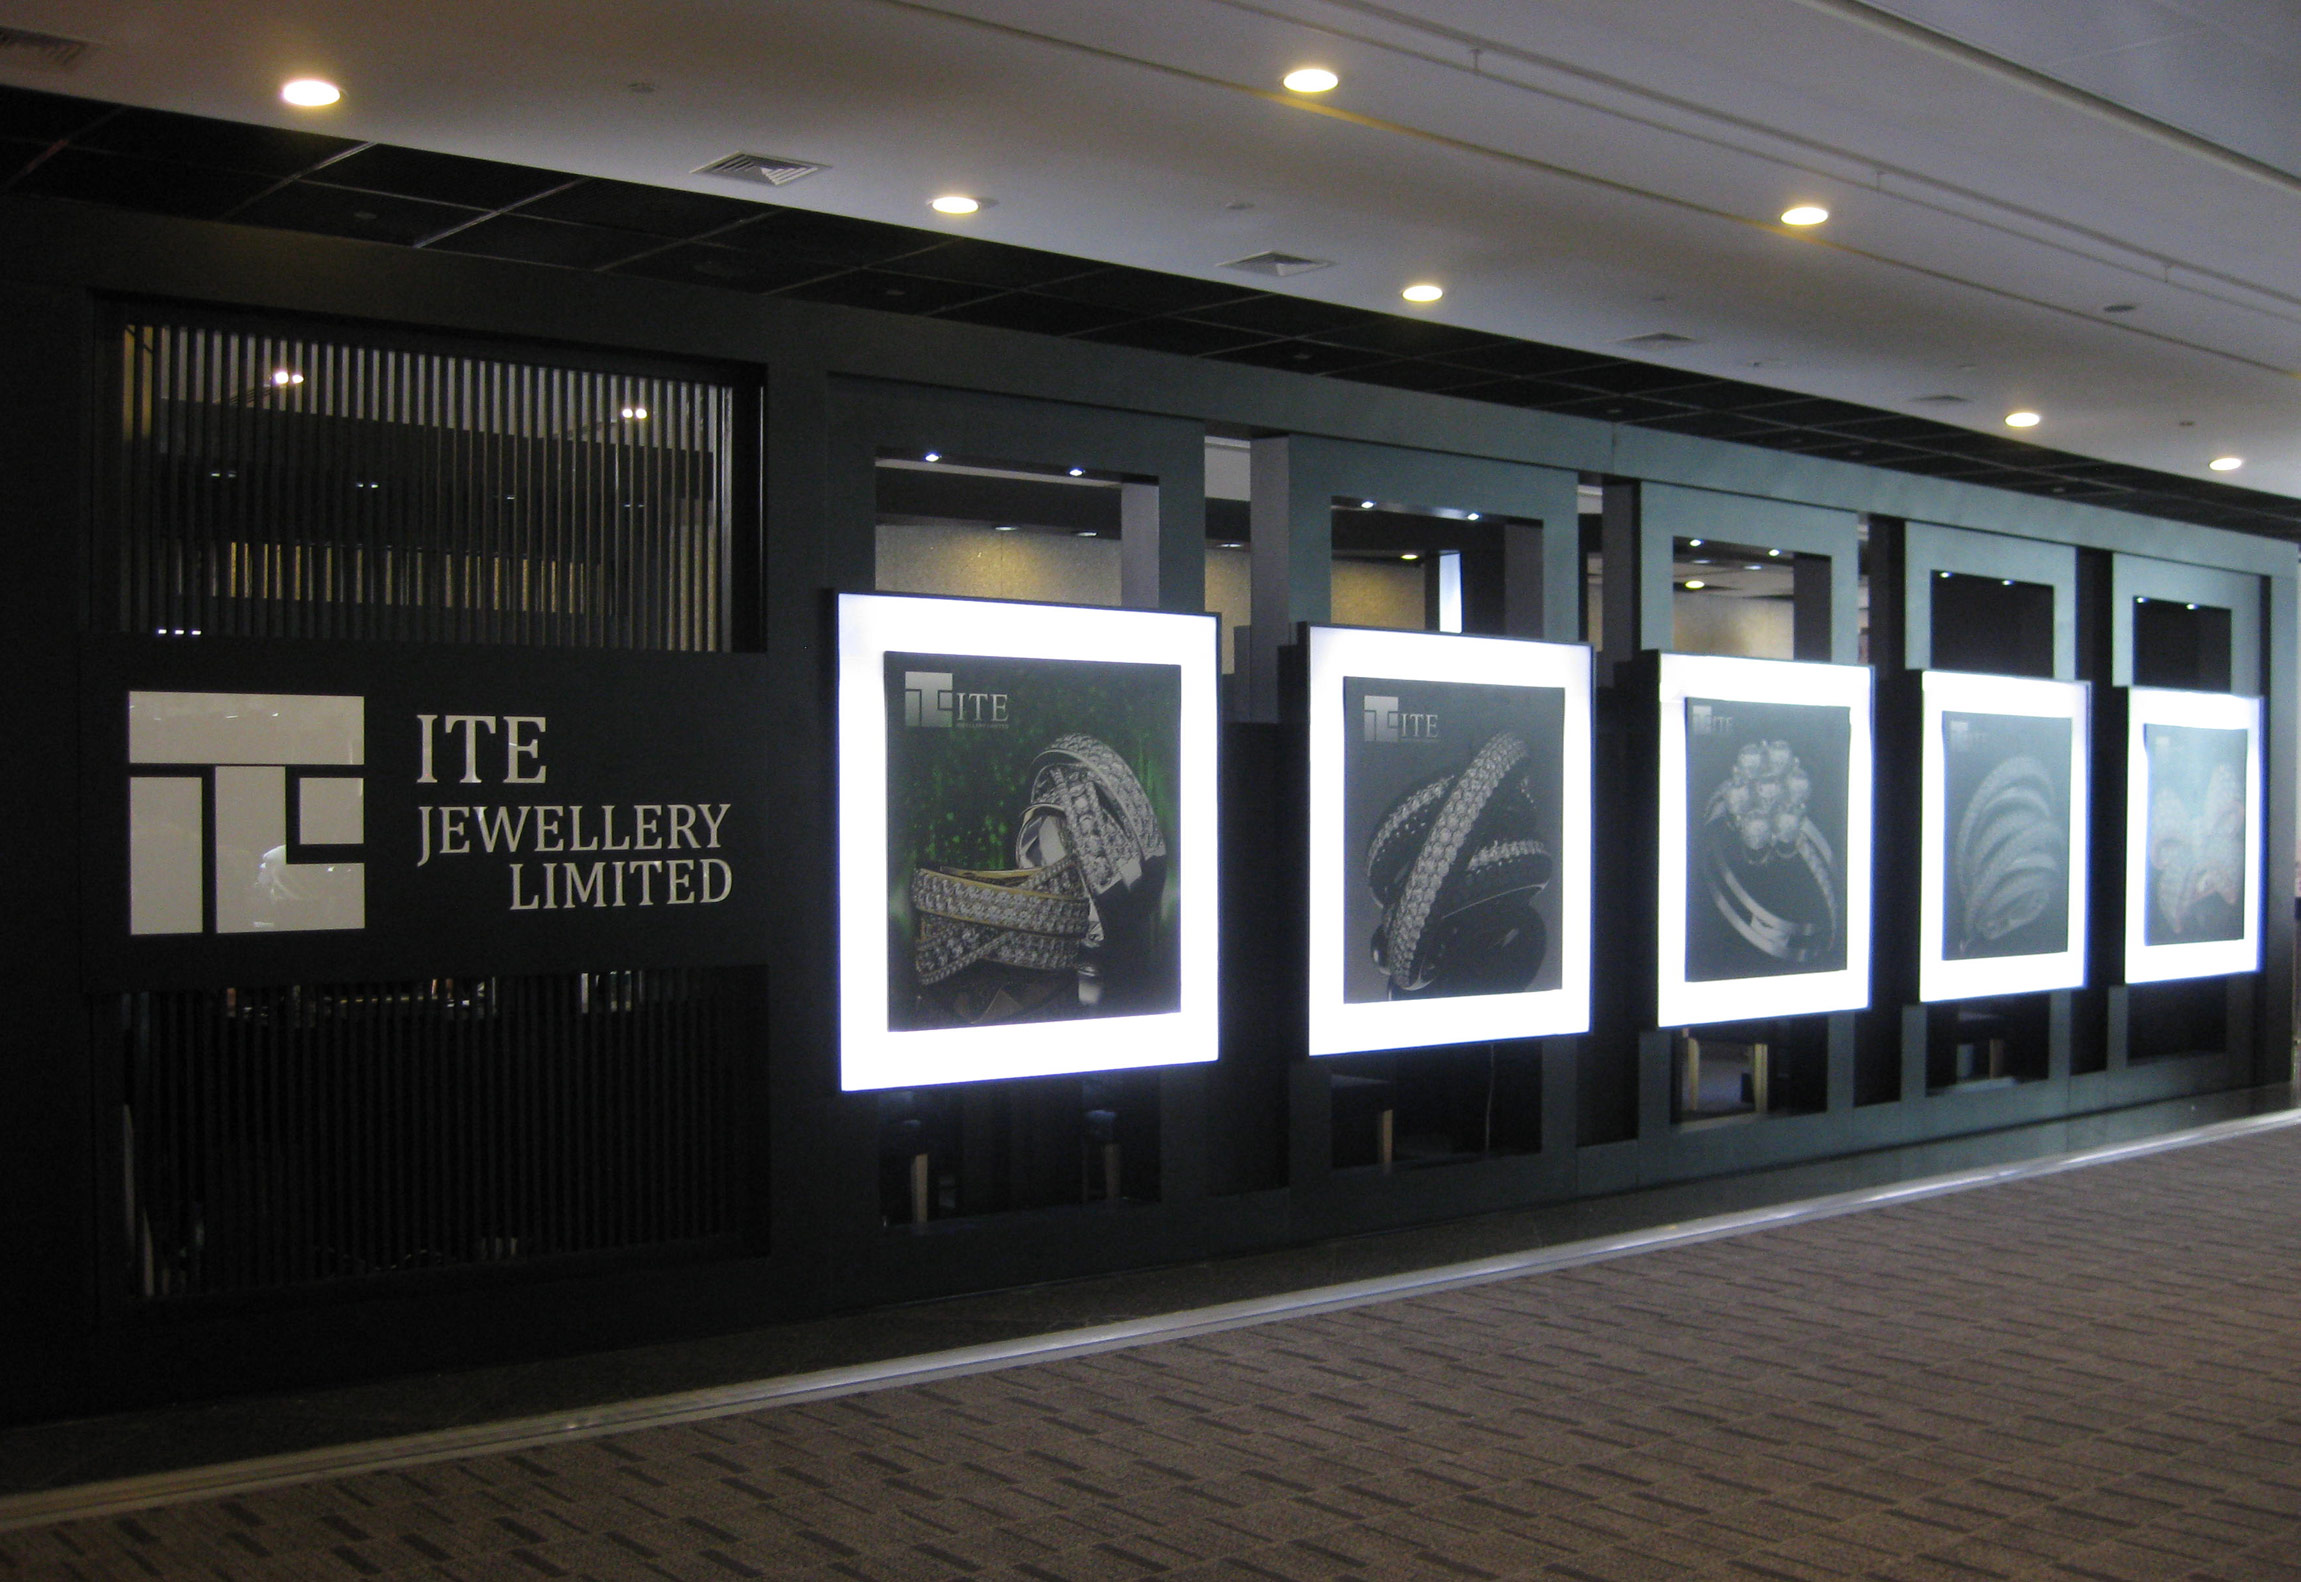 Event & Exhibitions | ITE Jewellery Limited